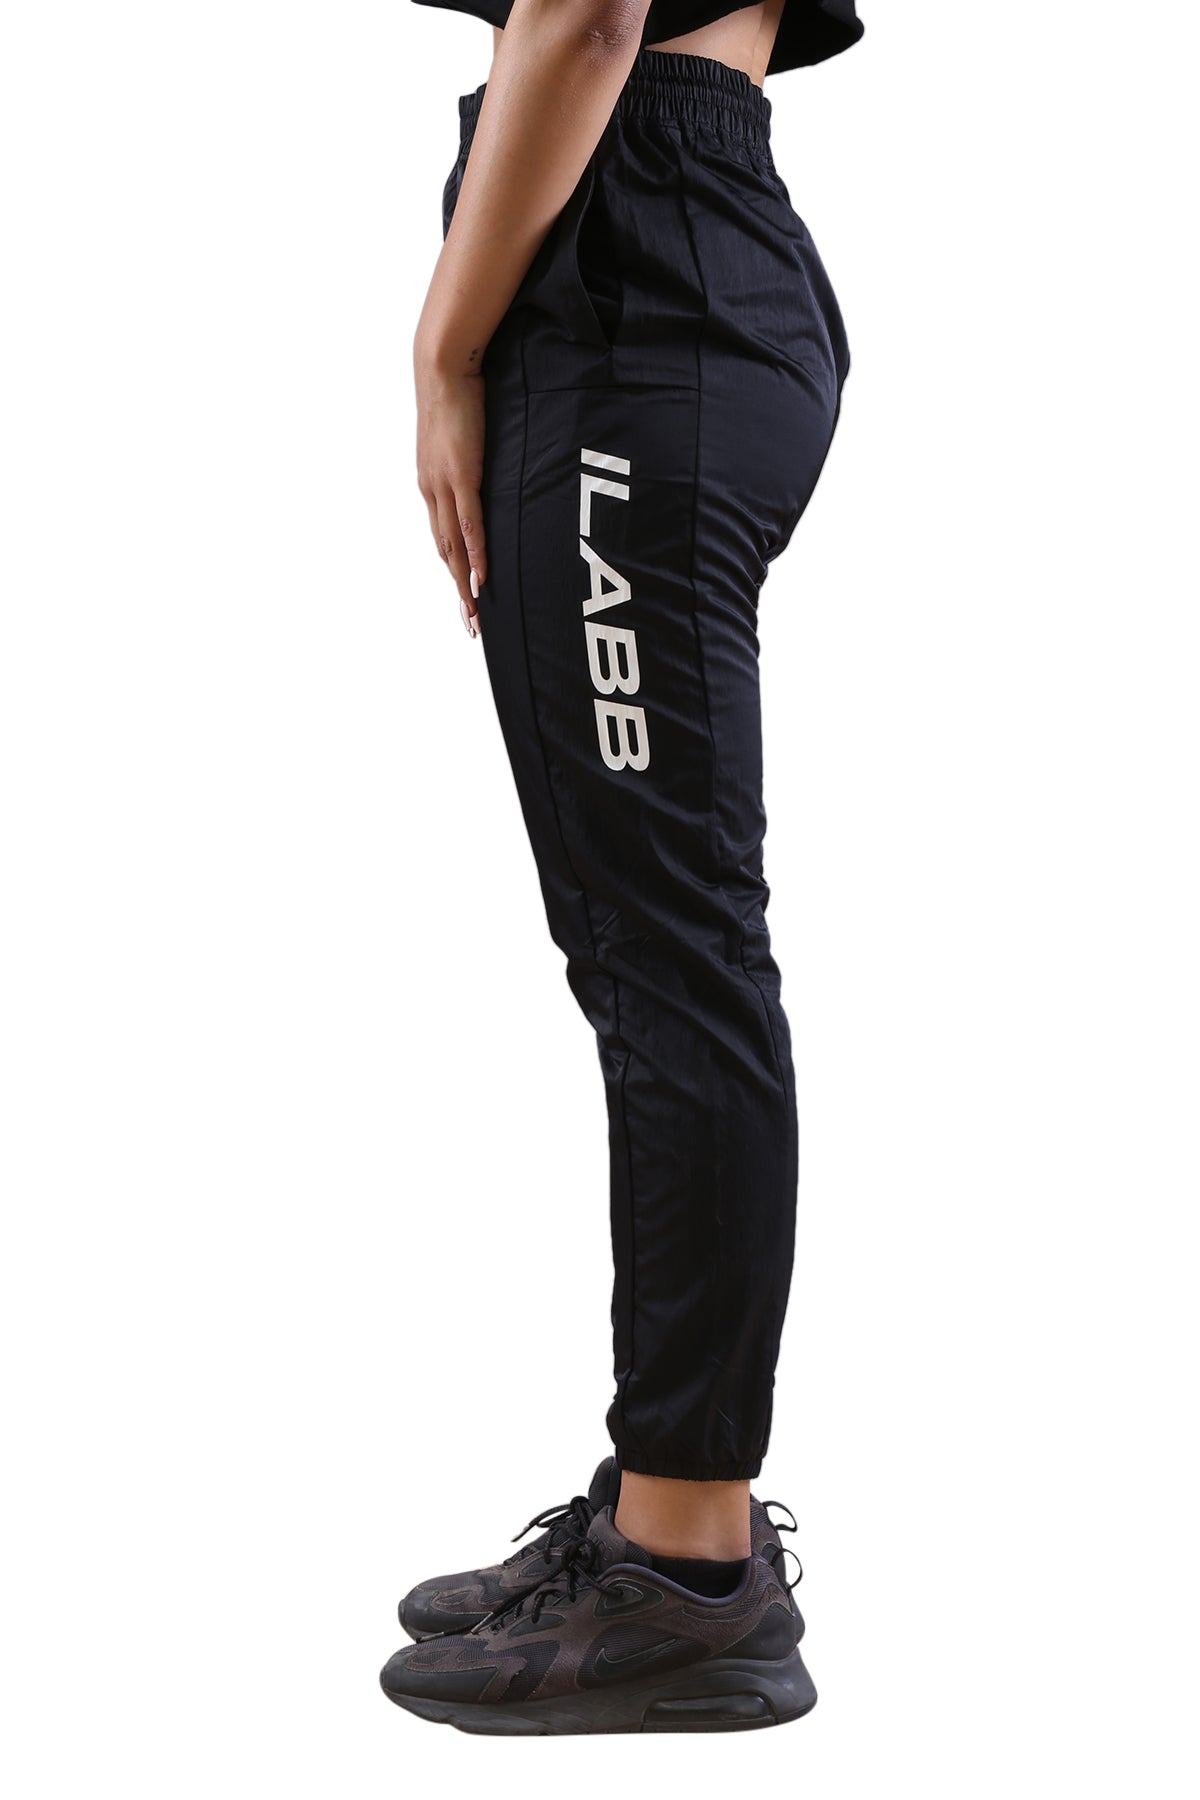 Ilabb Womens Ascend Trackies Black Angle